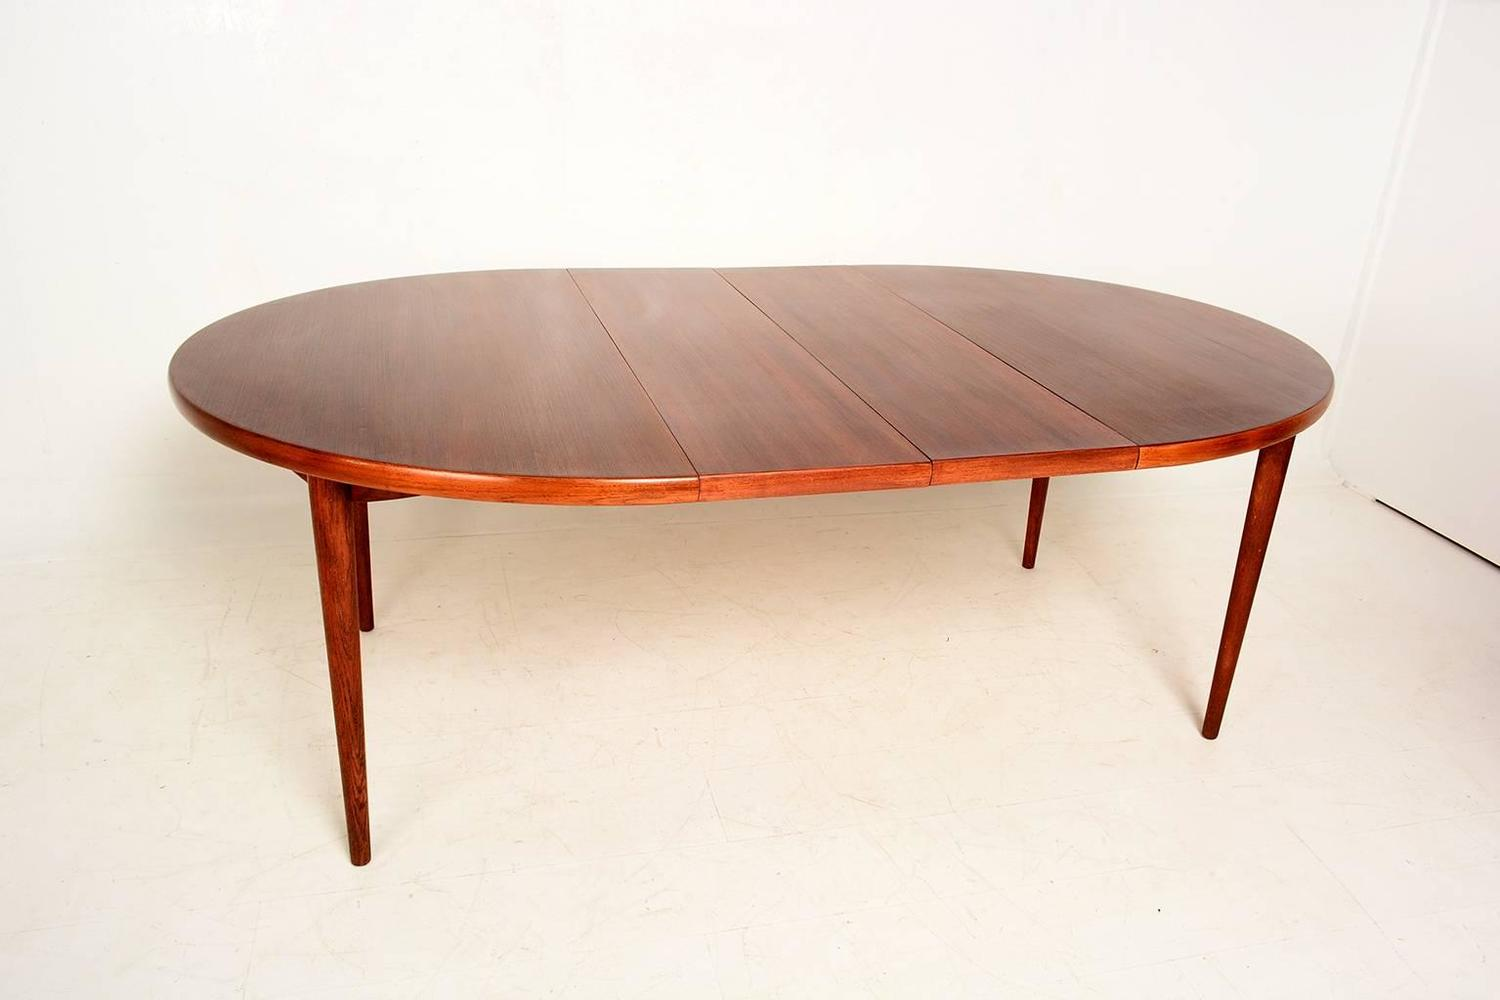 Swedish Oval Dining Table Scandinavian Modern For Sale At 1stdibs